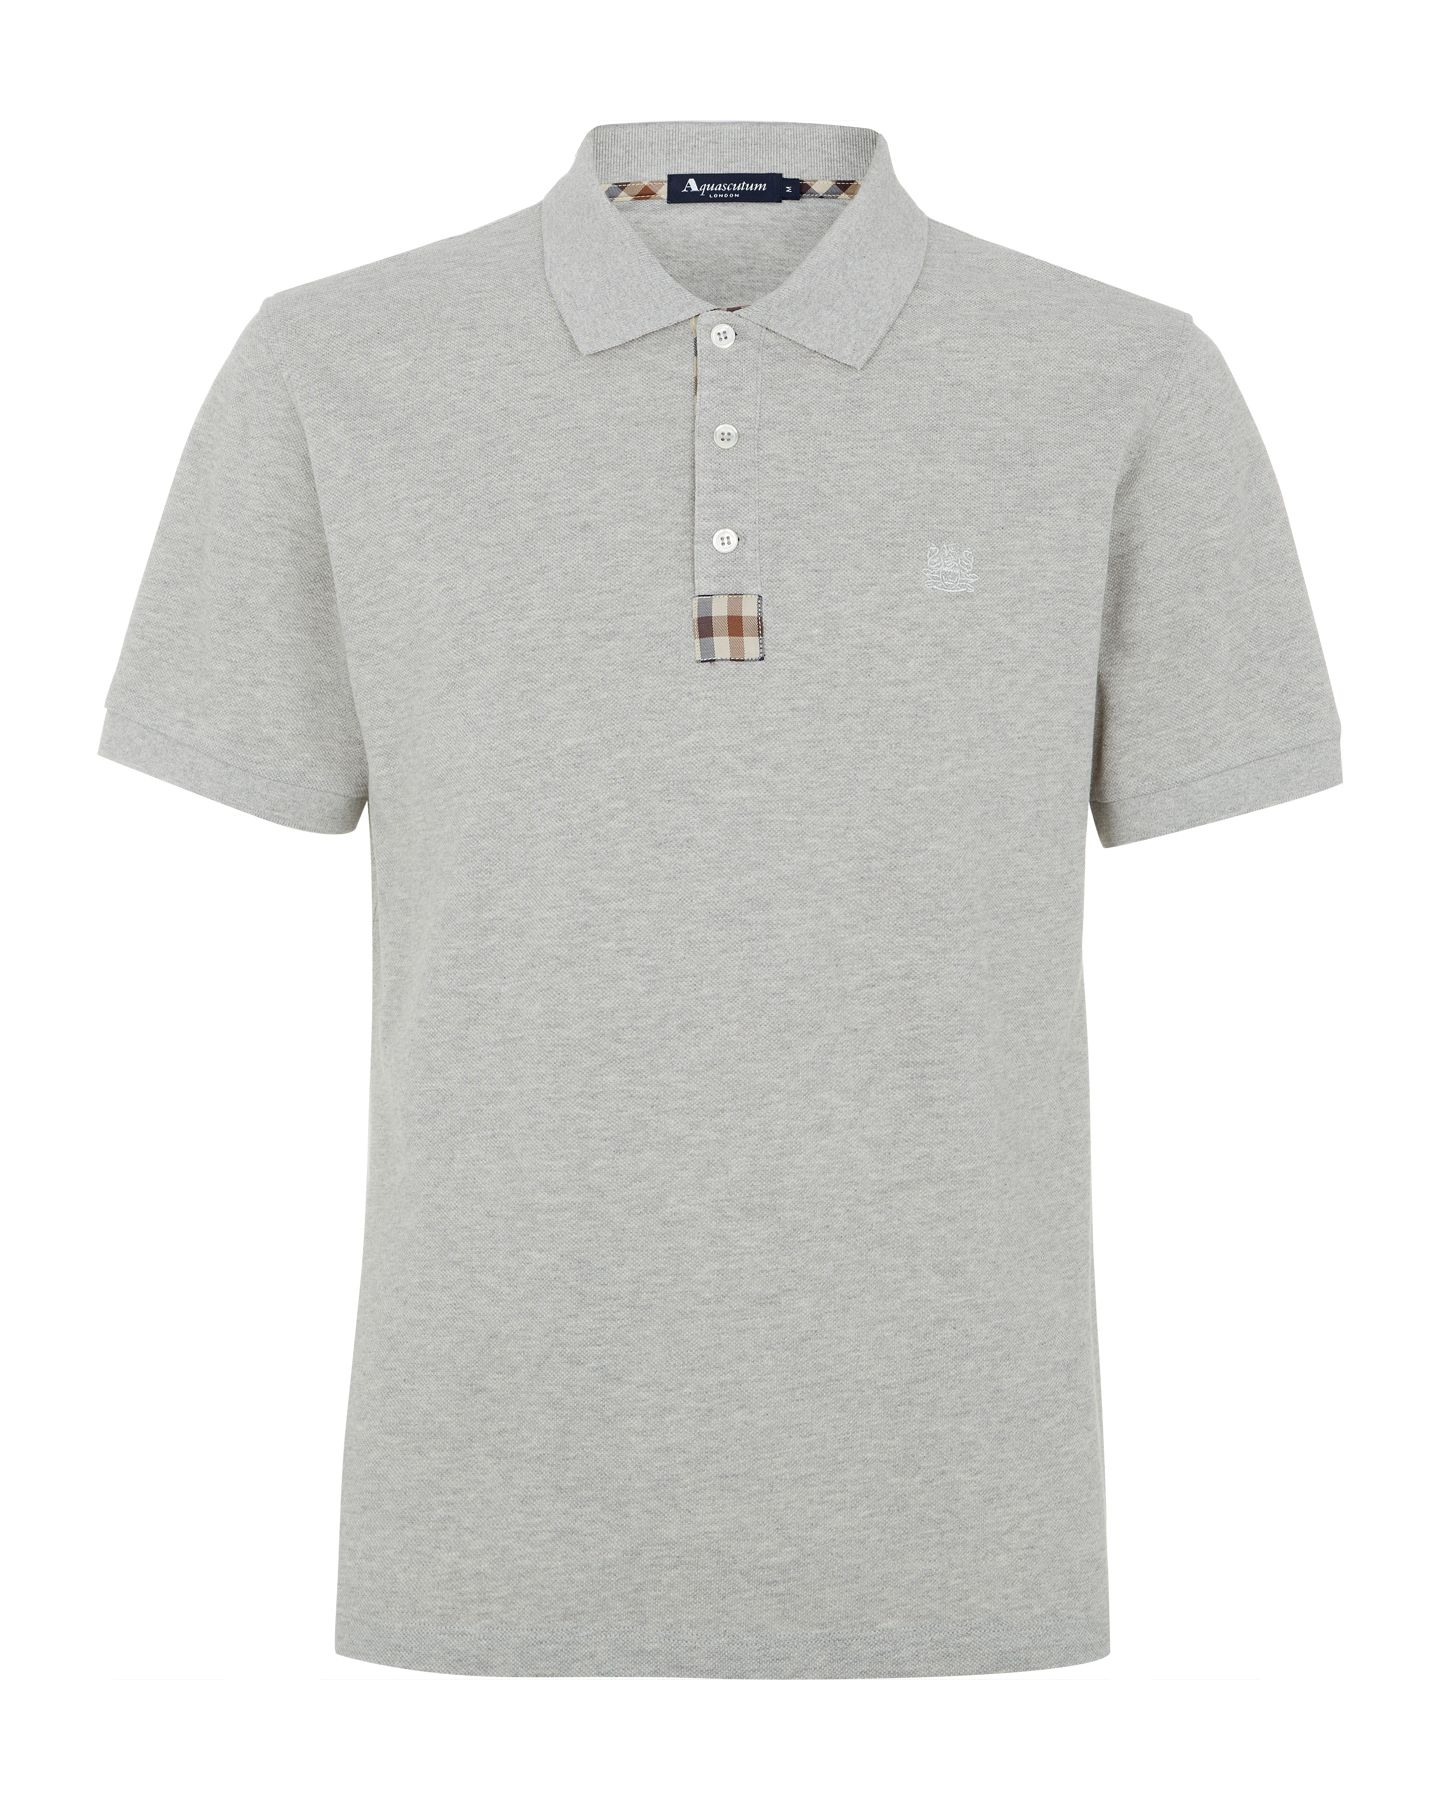 Club check placket polo shirt